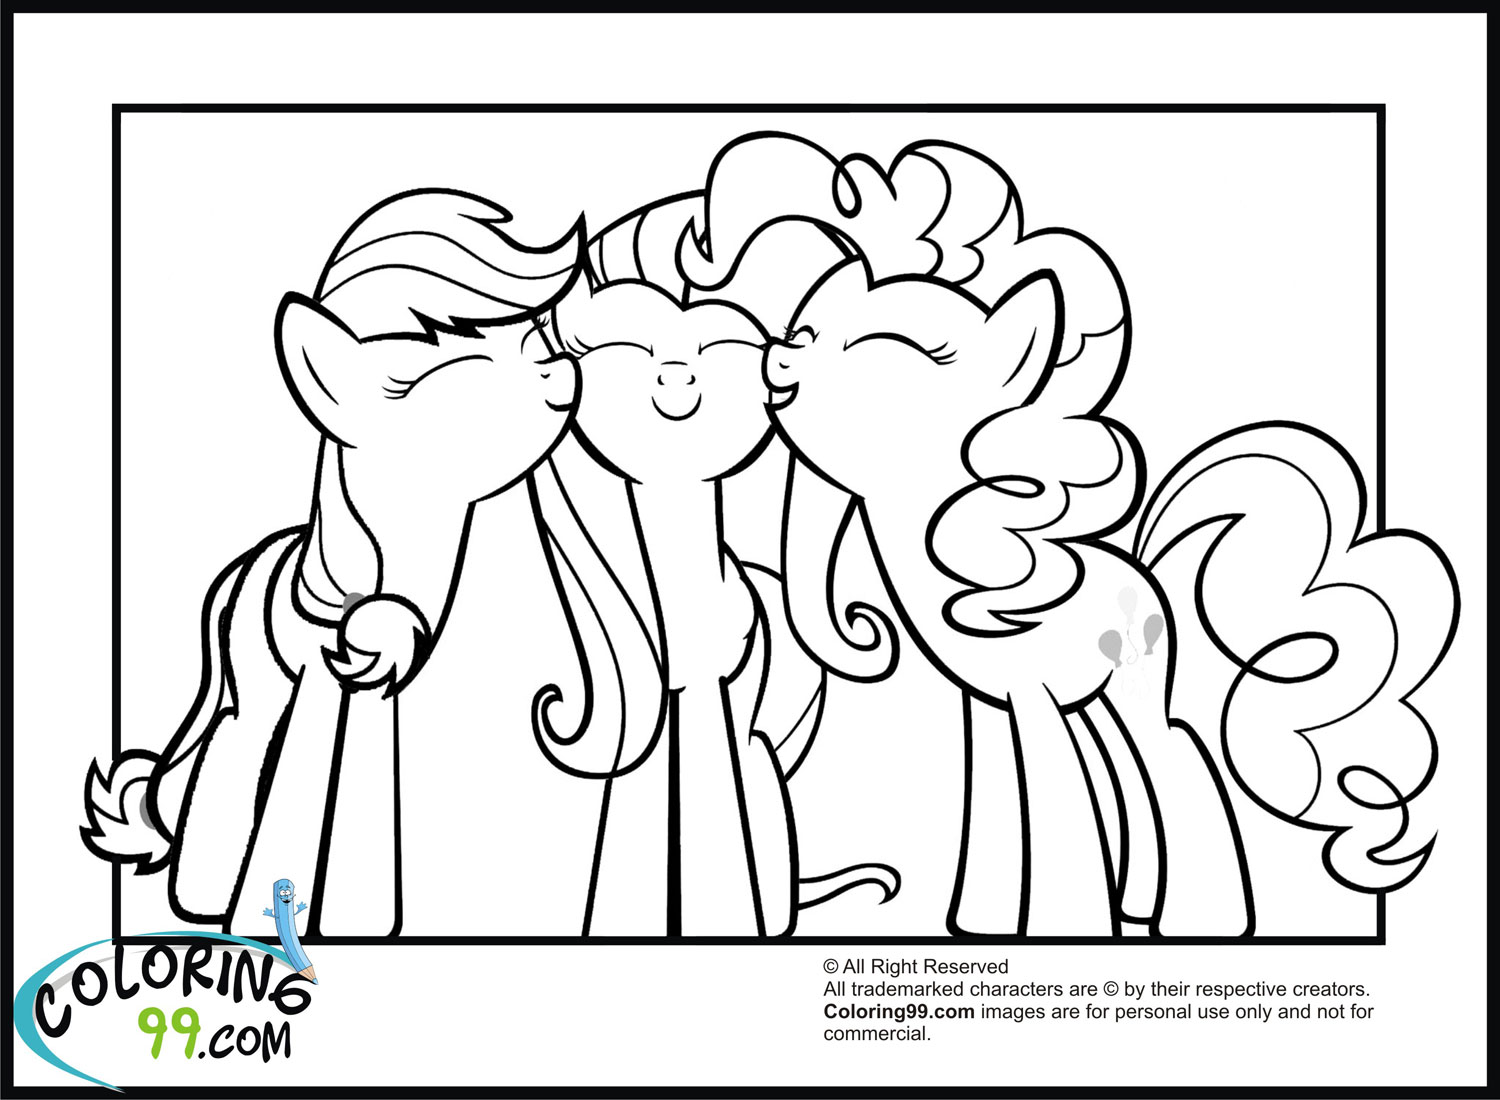 pinkie pie my little pony coloring pages - My Little Pony on Pinterest Pinkie Pie, Rainbow Dash and